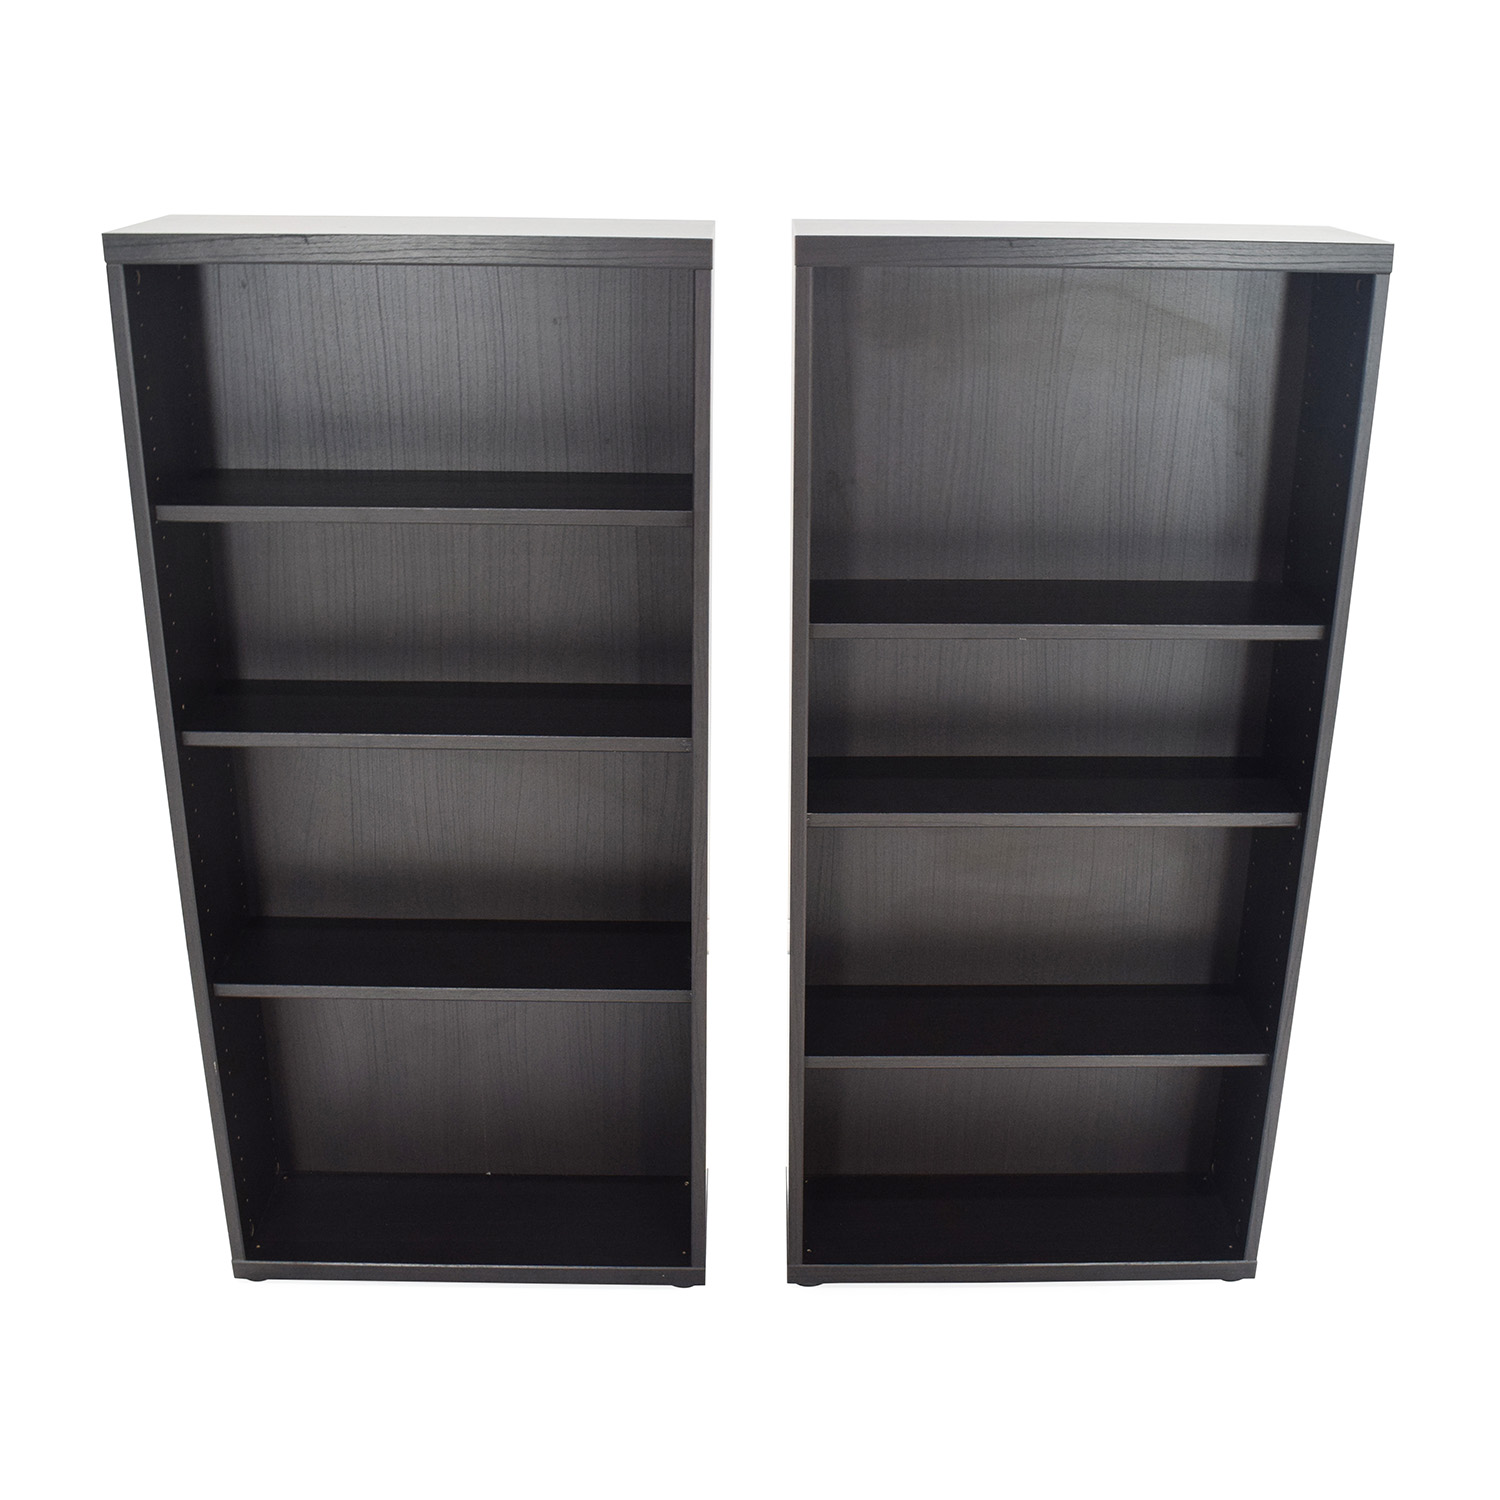 IKEA Pair of Bookshelves nj